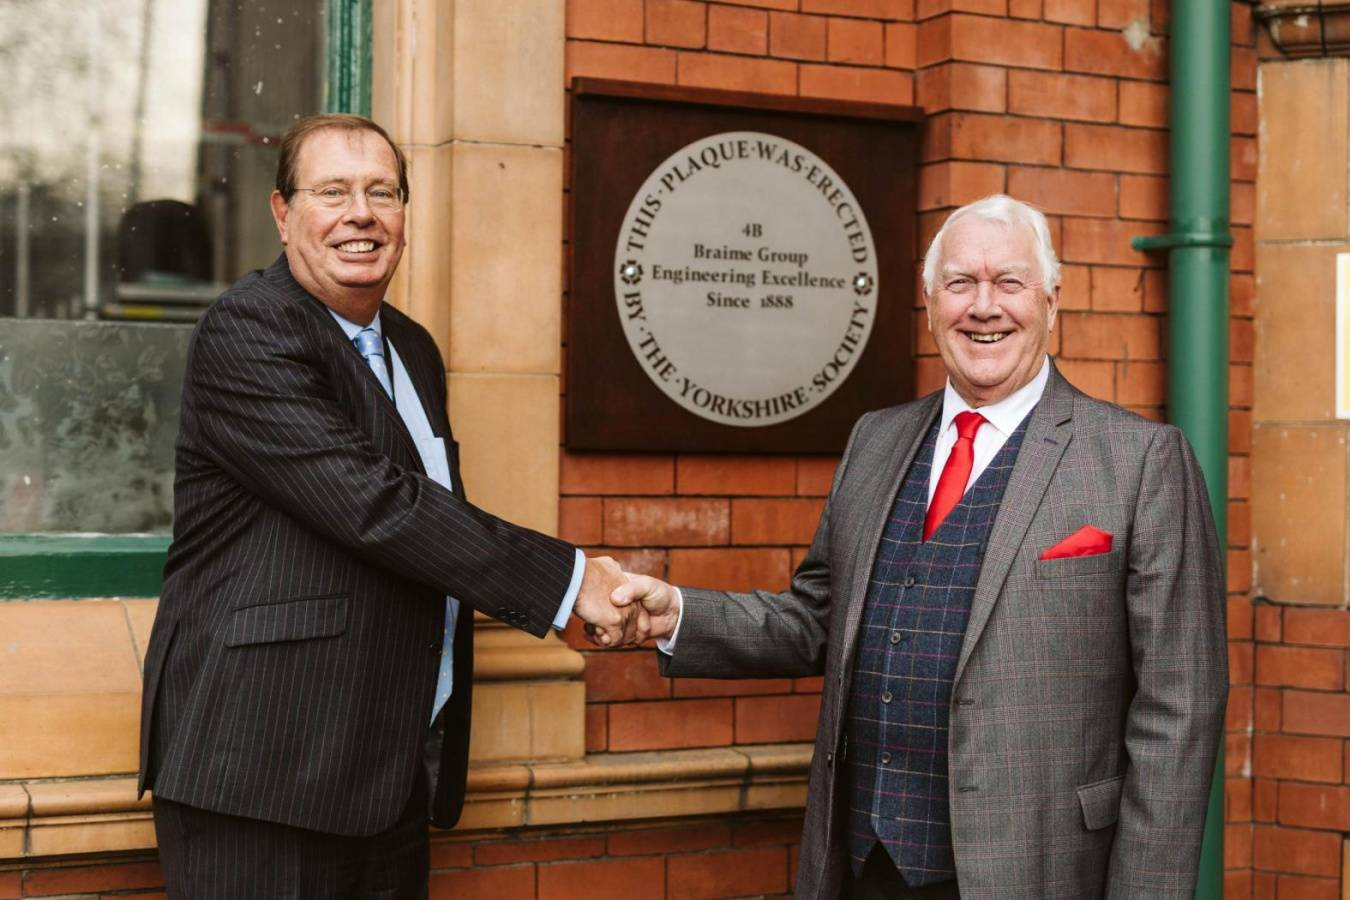 4B Braime Group awarded Yorkshire Plaque of Engineering Excellence